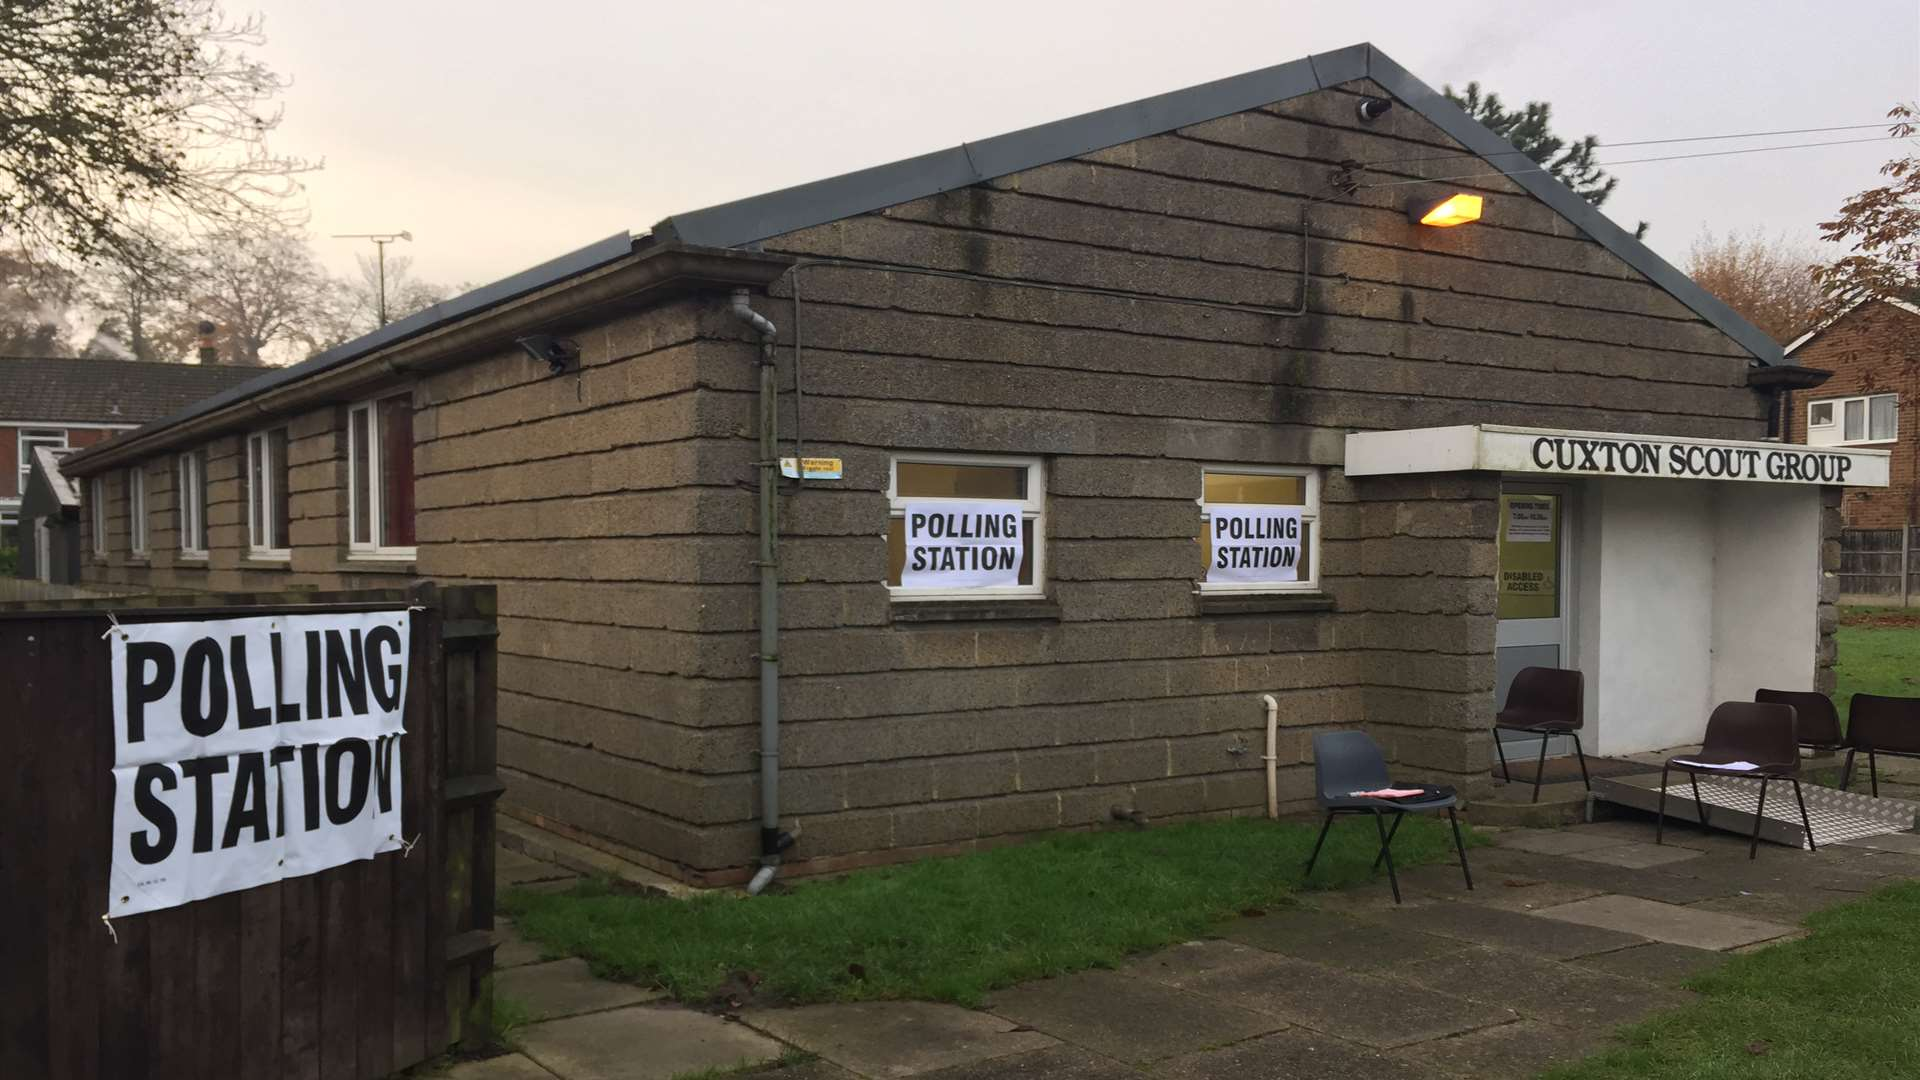 The polling stations have closed